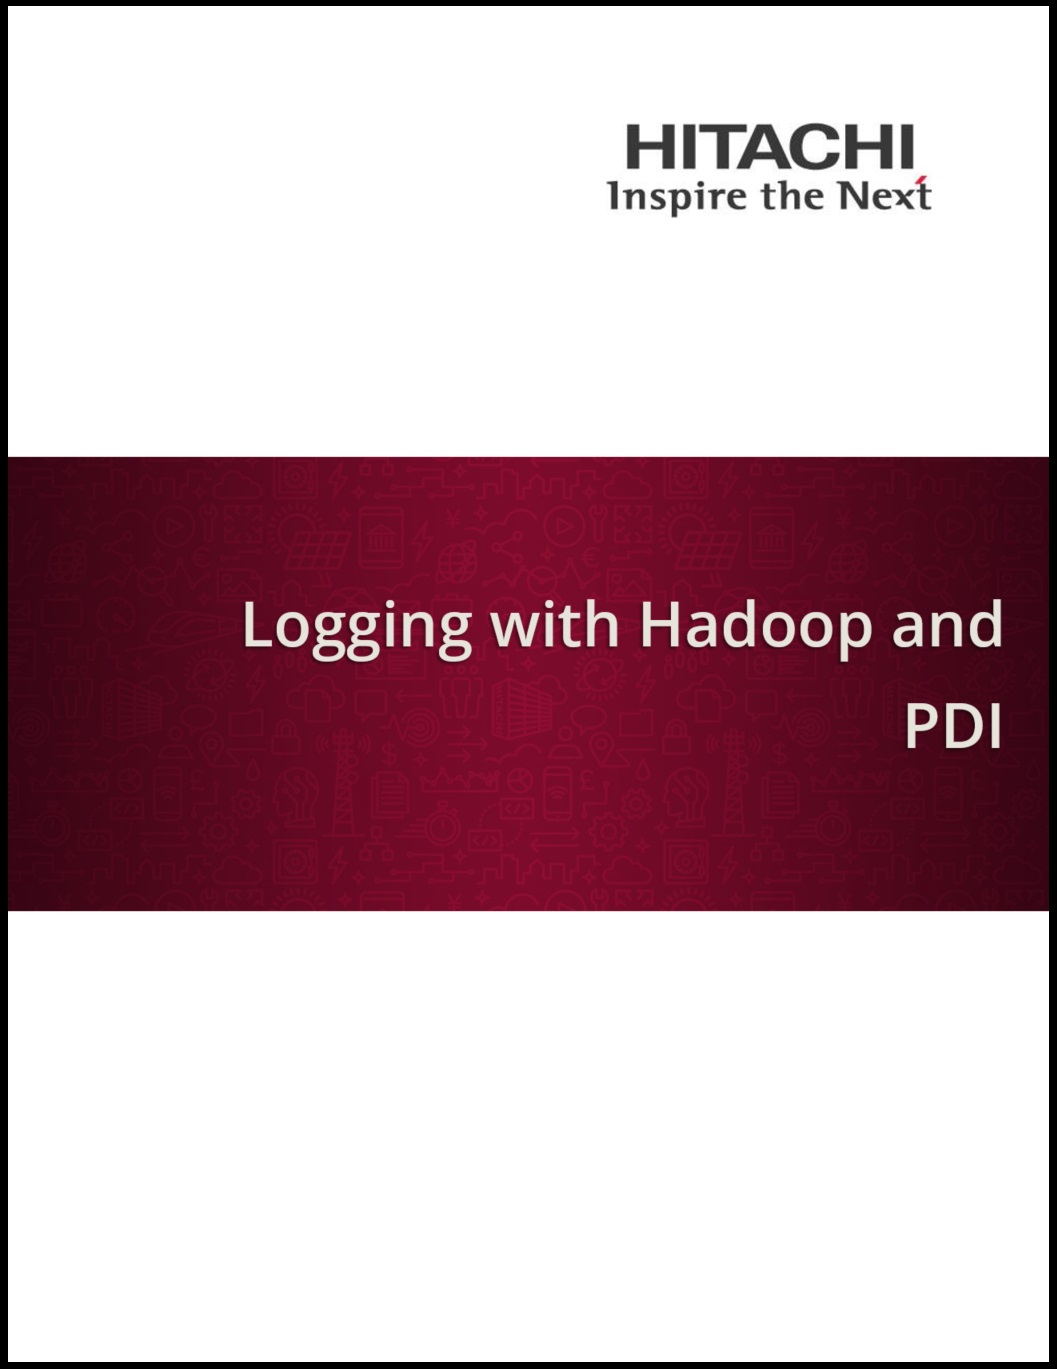 Logging_with_Hadoop_and_PDI_cover.jpg